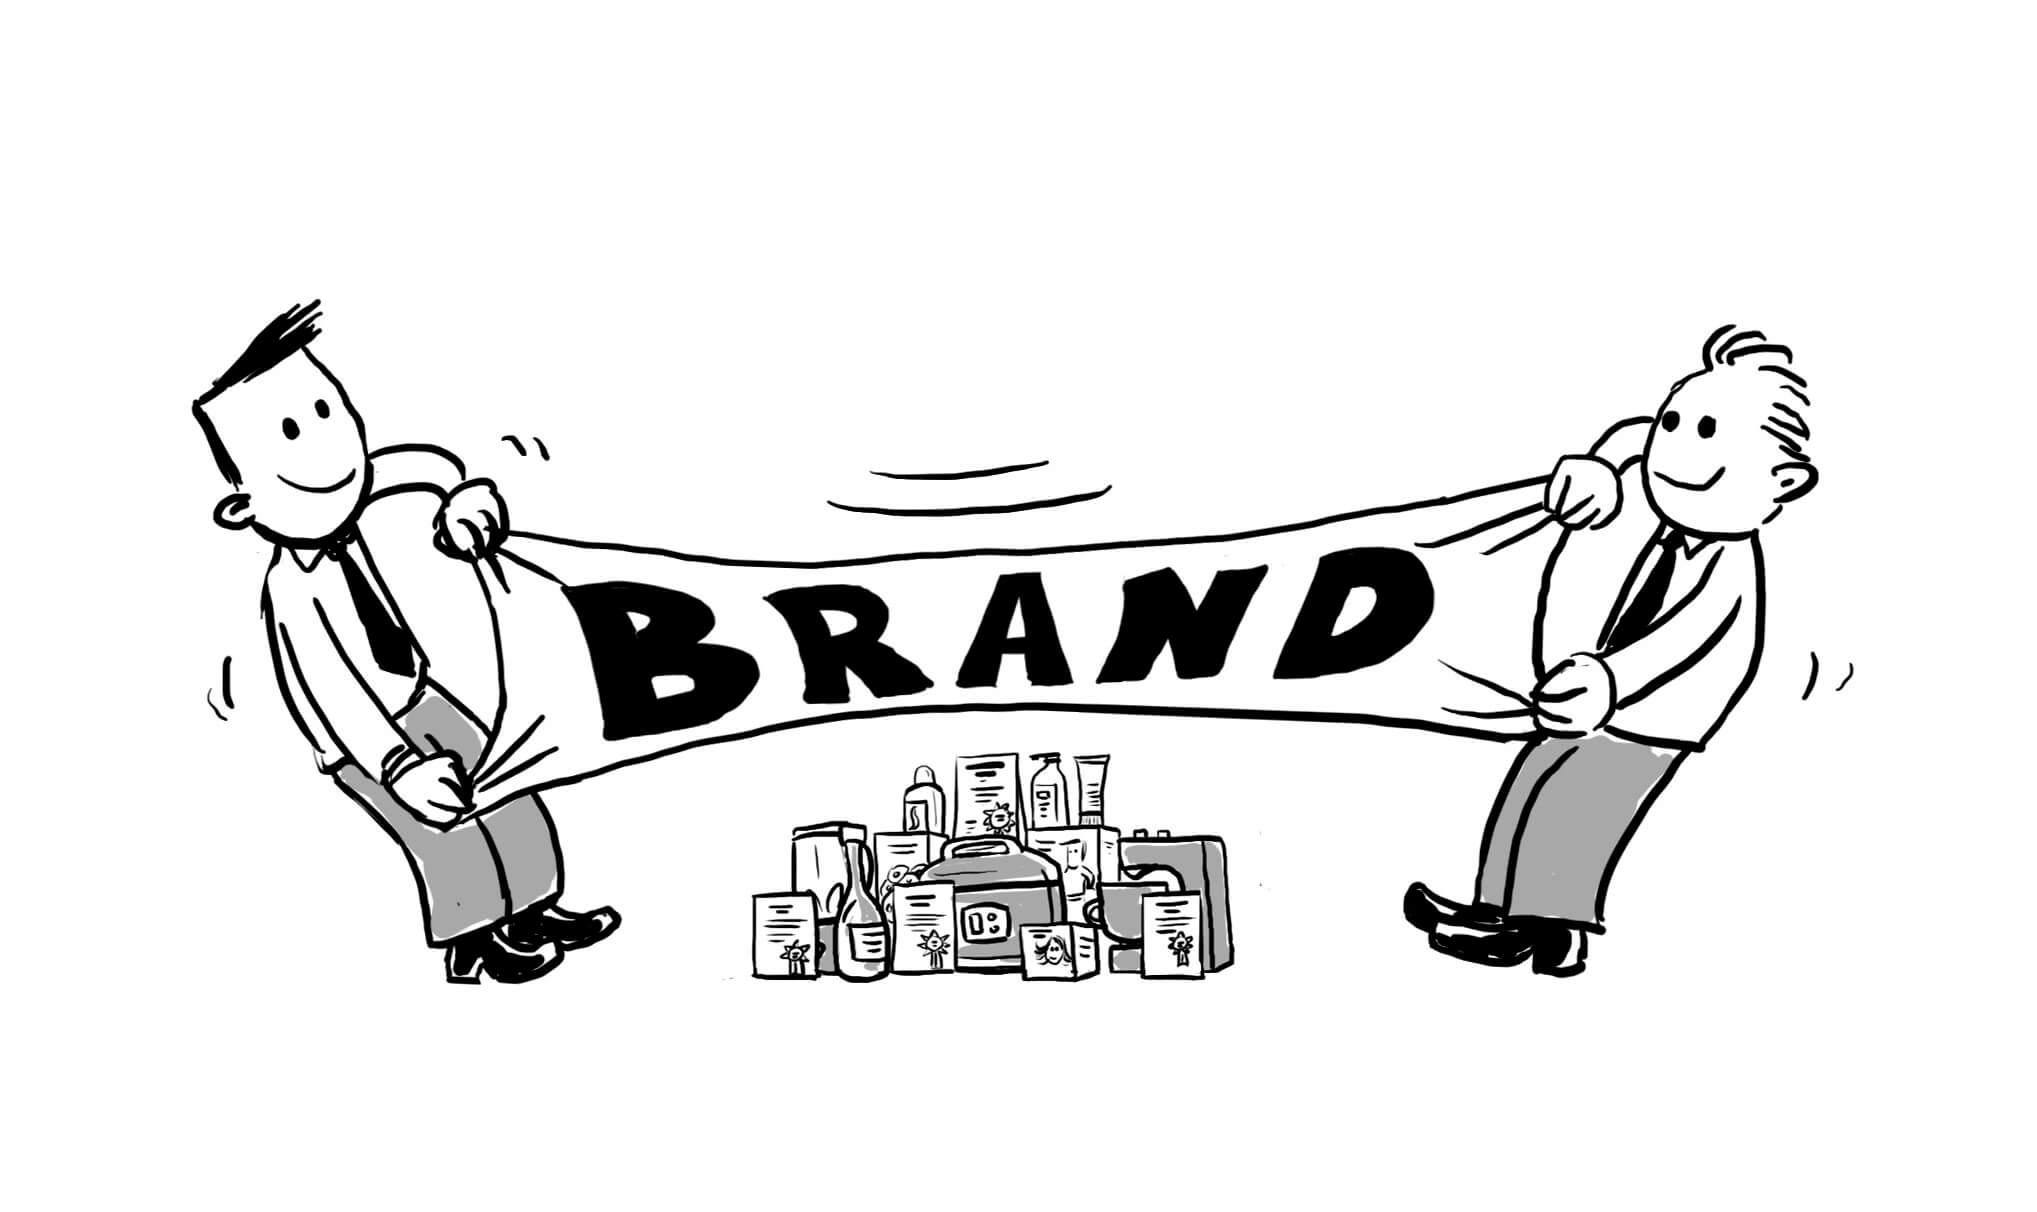 Customer centric brand building